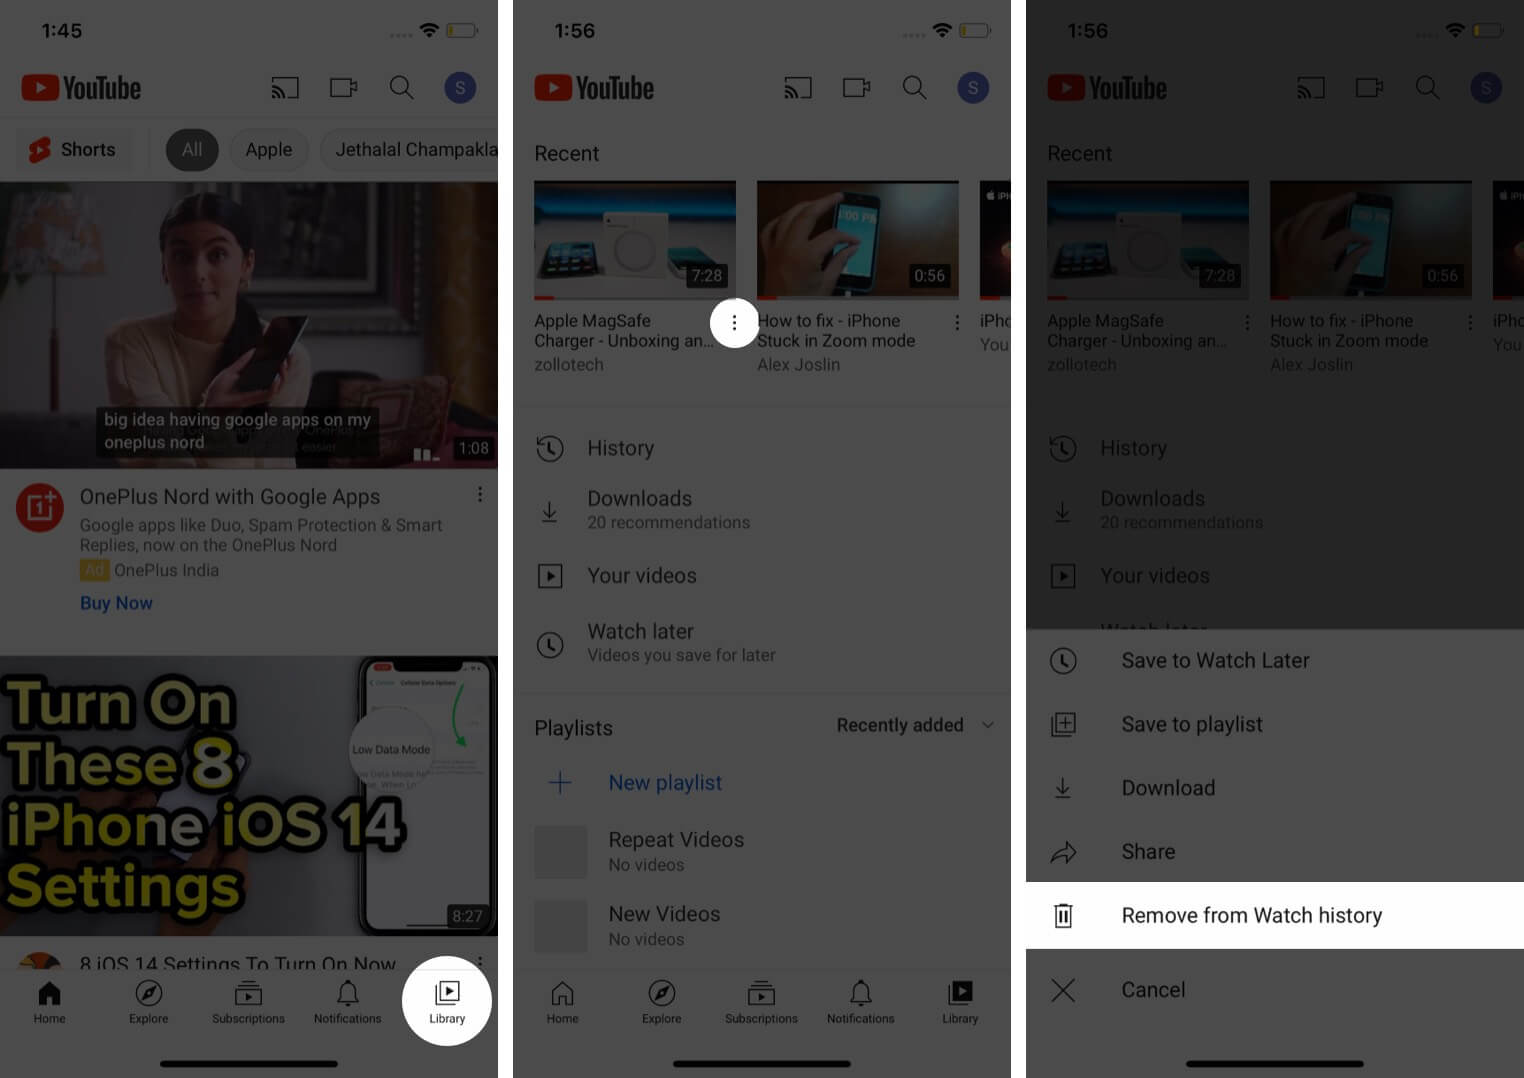 Delete Individual Watch History in YouTube App on iPhone